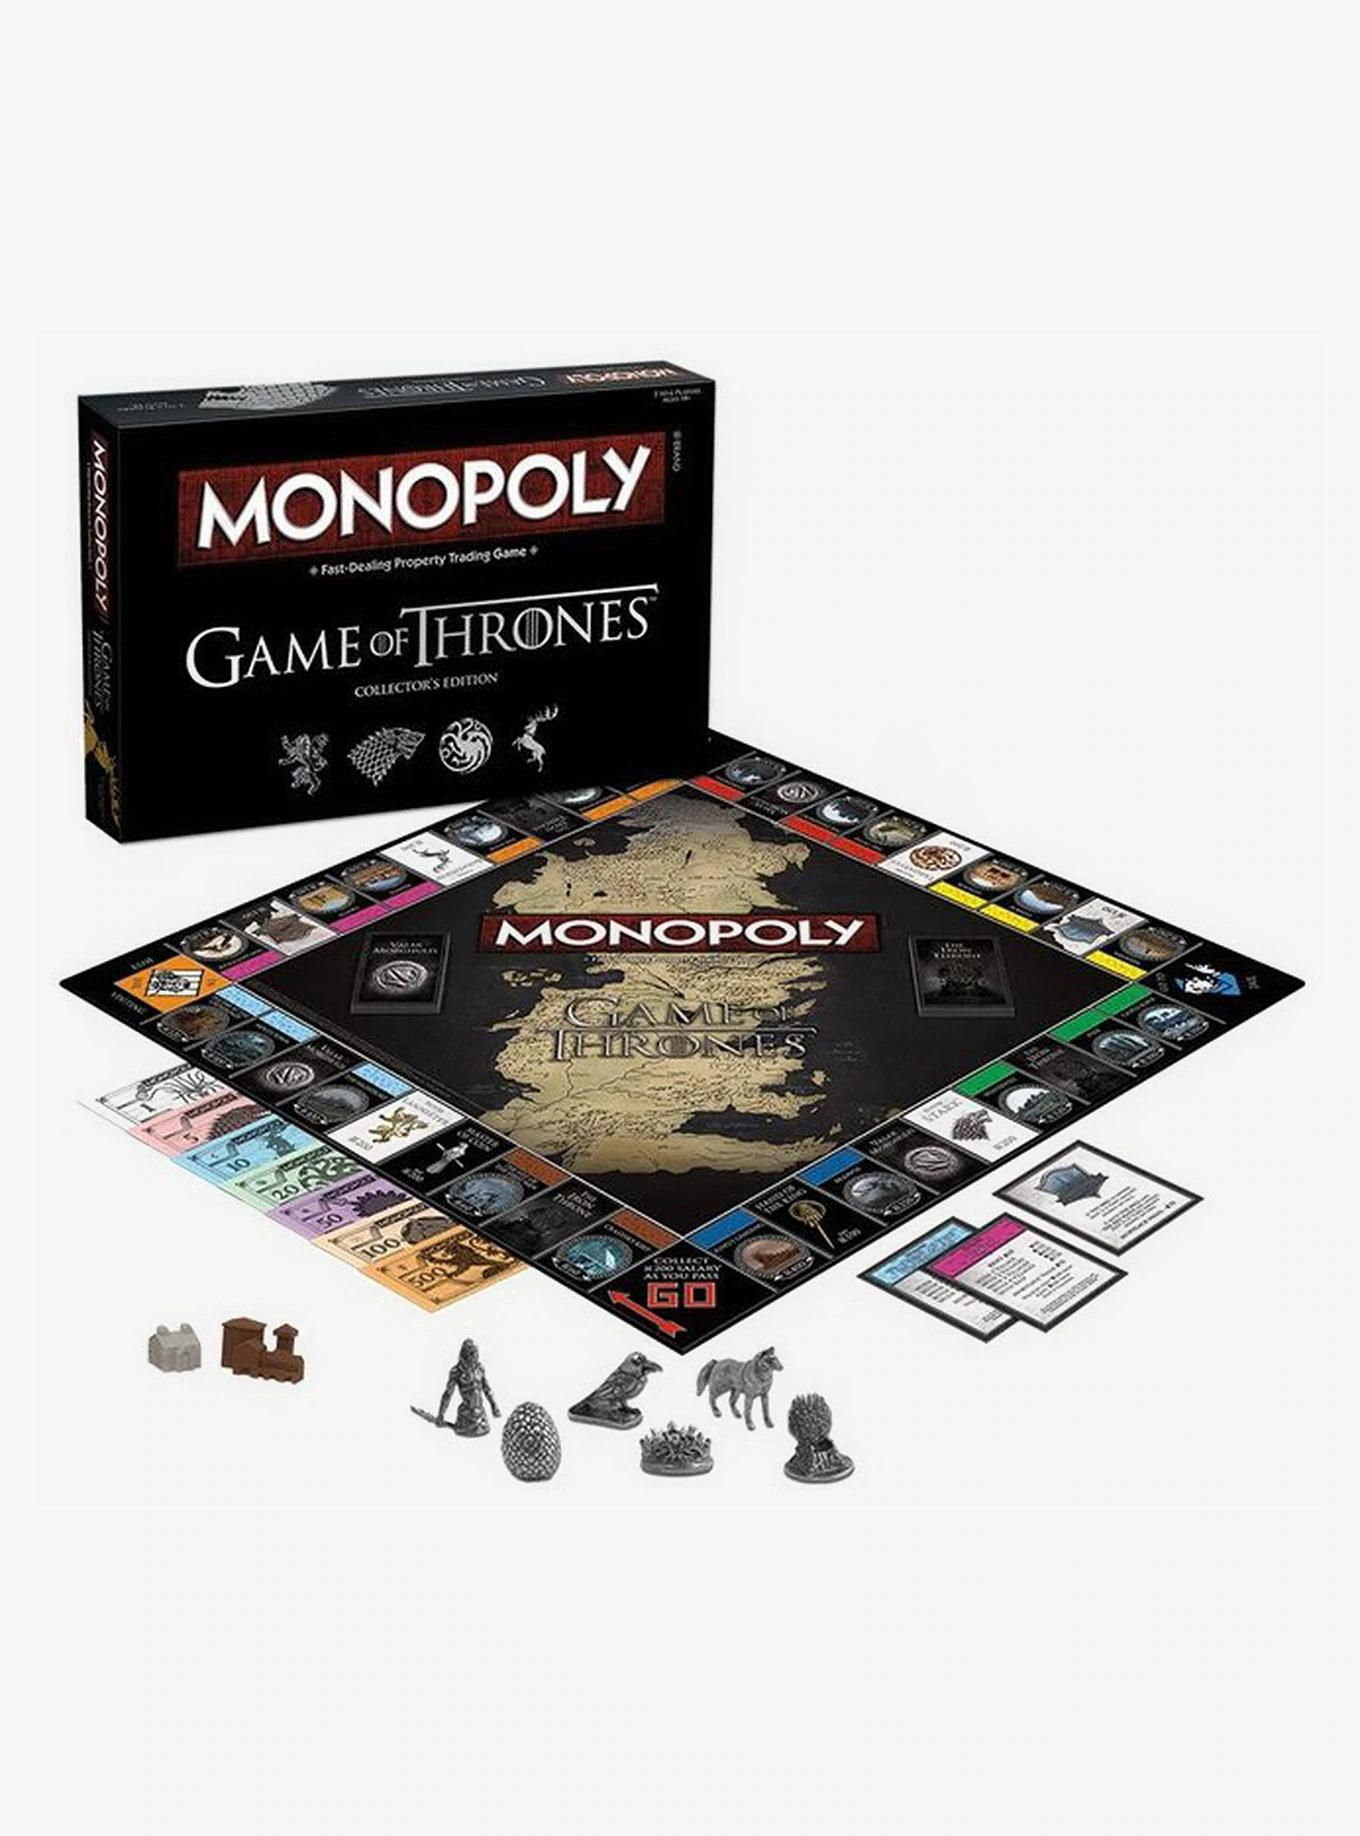 Game Of Thrones Collector S Edition Monopoly Game Of Thrones Gifts Game Of Thrones Cards Game Of Thrones Books